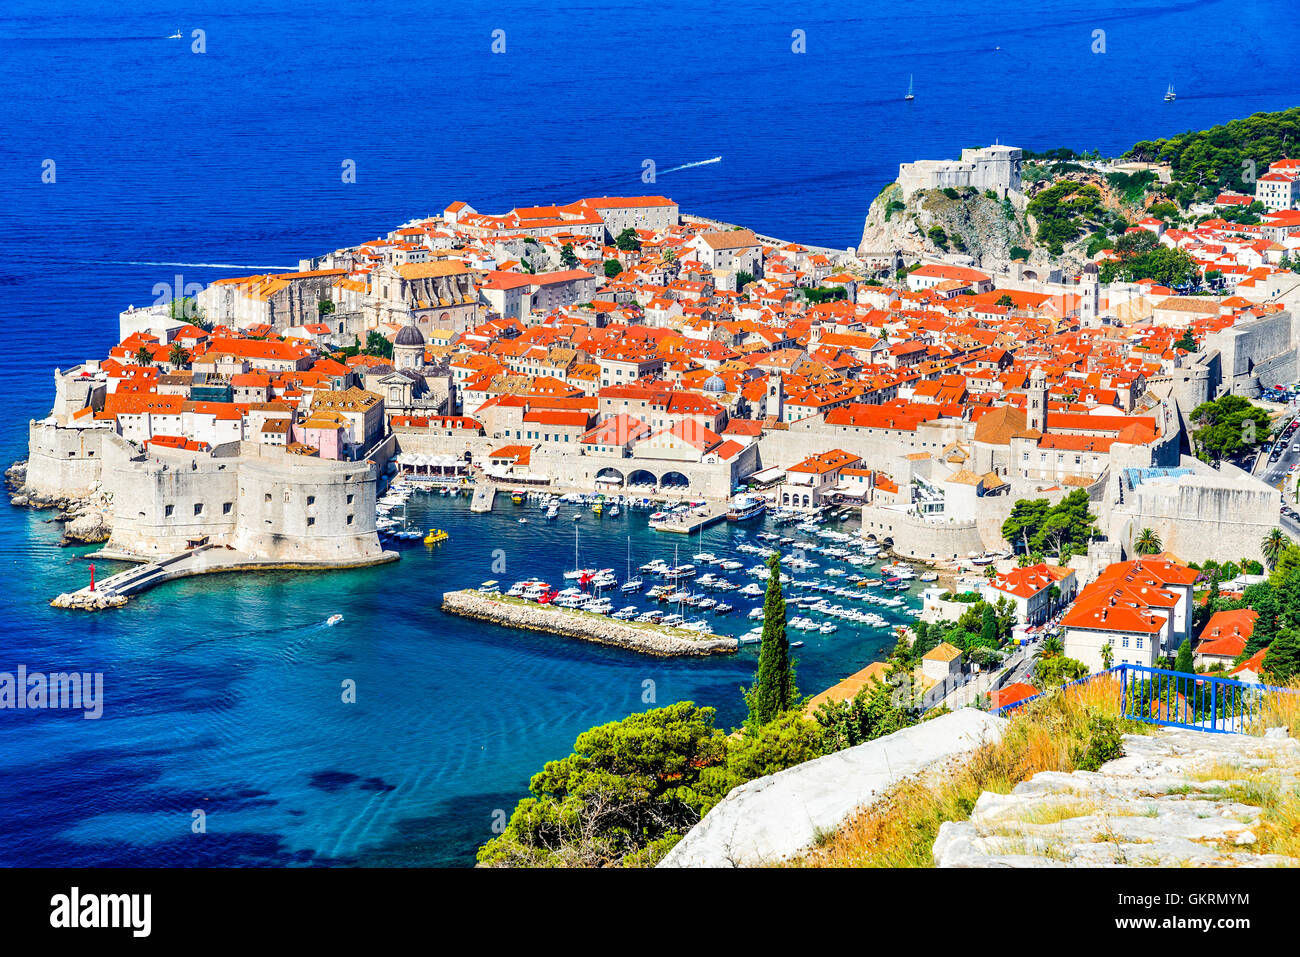 Dubrovnik, Croatia. Picturesque view on the old town (medieval Ragusa) and Dalmatian Coast of Adriatic Sea. - Stock Image